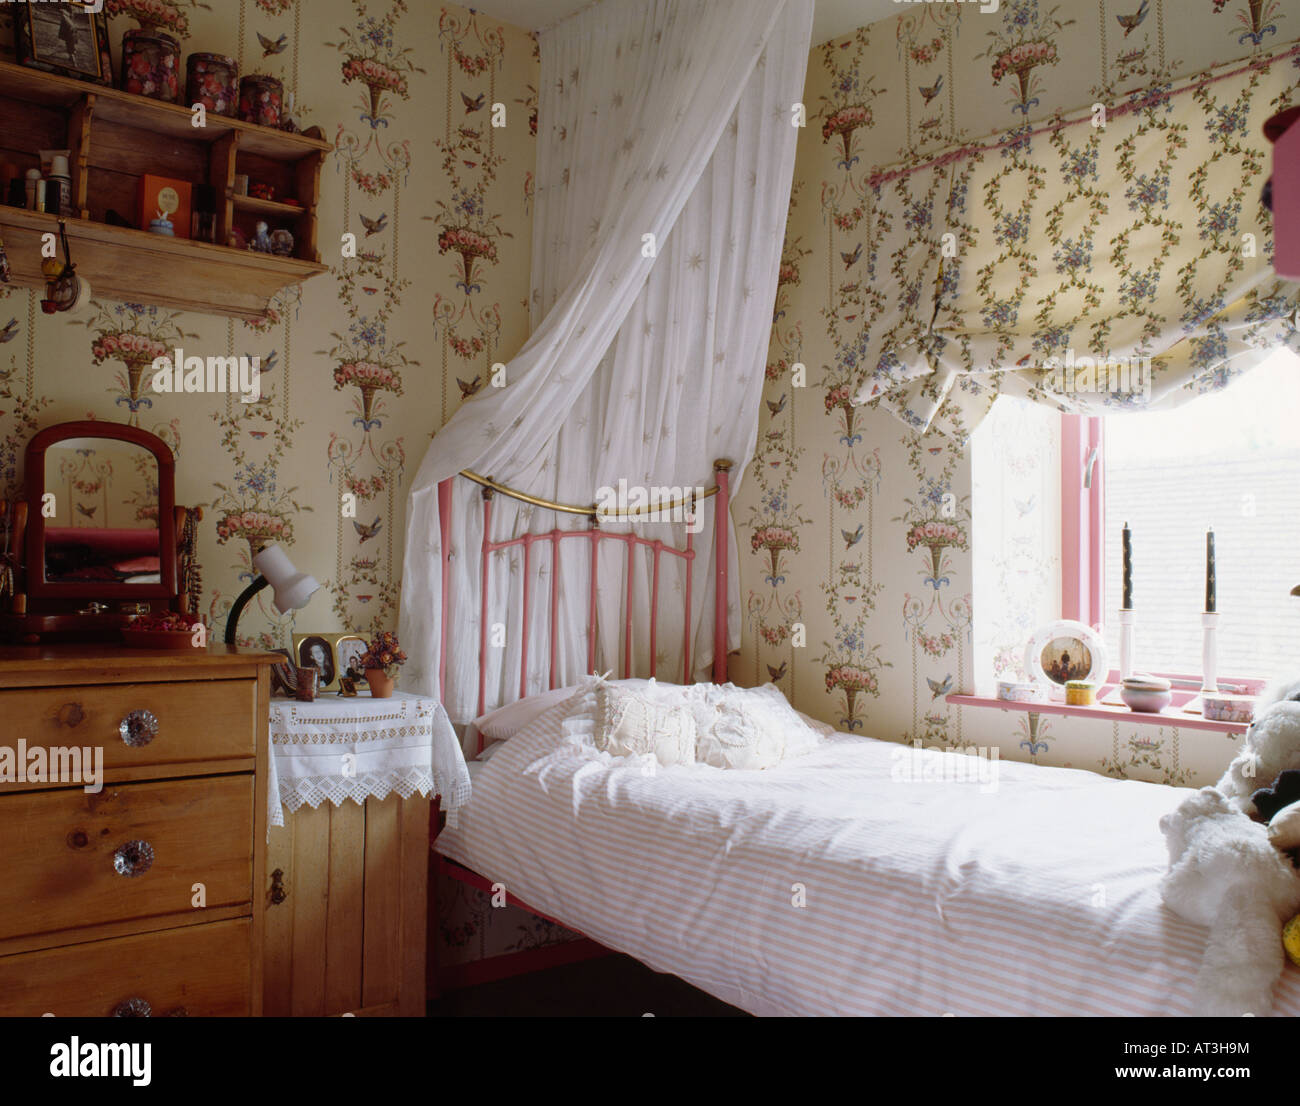 Japanese Bedroom Wallpaper Girls Bedroom Blinds Bedroom Decorating Colour Ideas Minion Bedroom Accessories: Patterned Wallpaper And Blind In Teenager Girls Bedroom